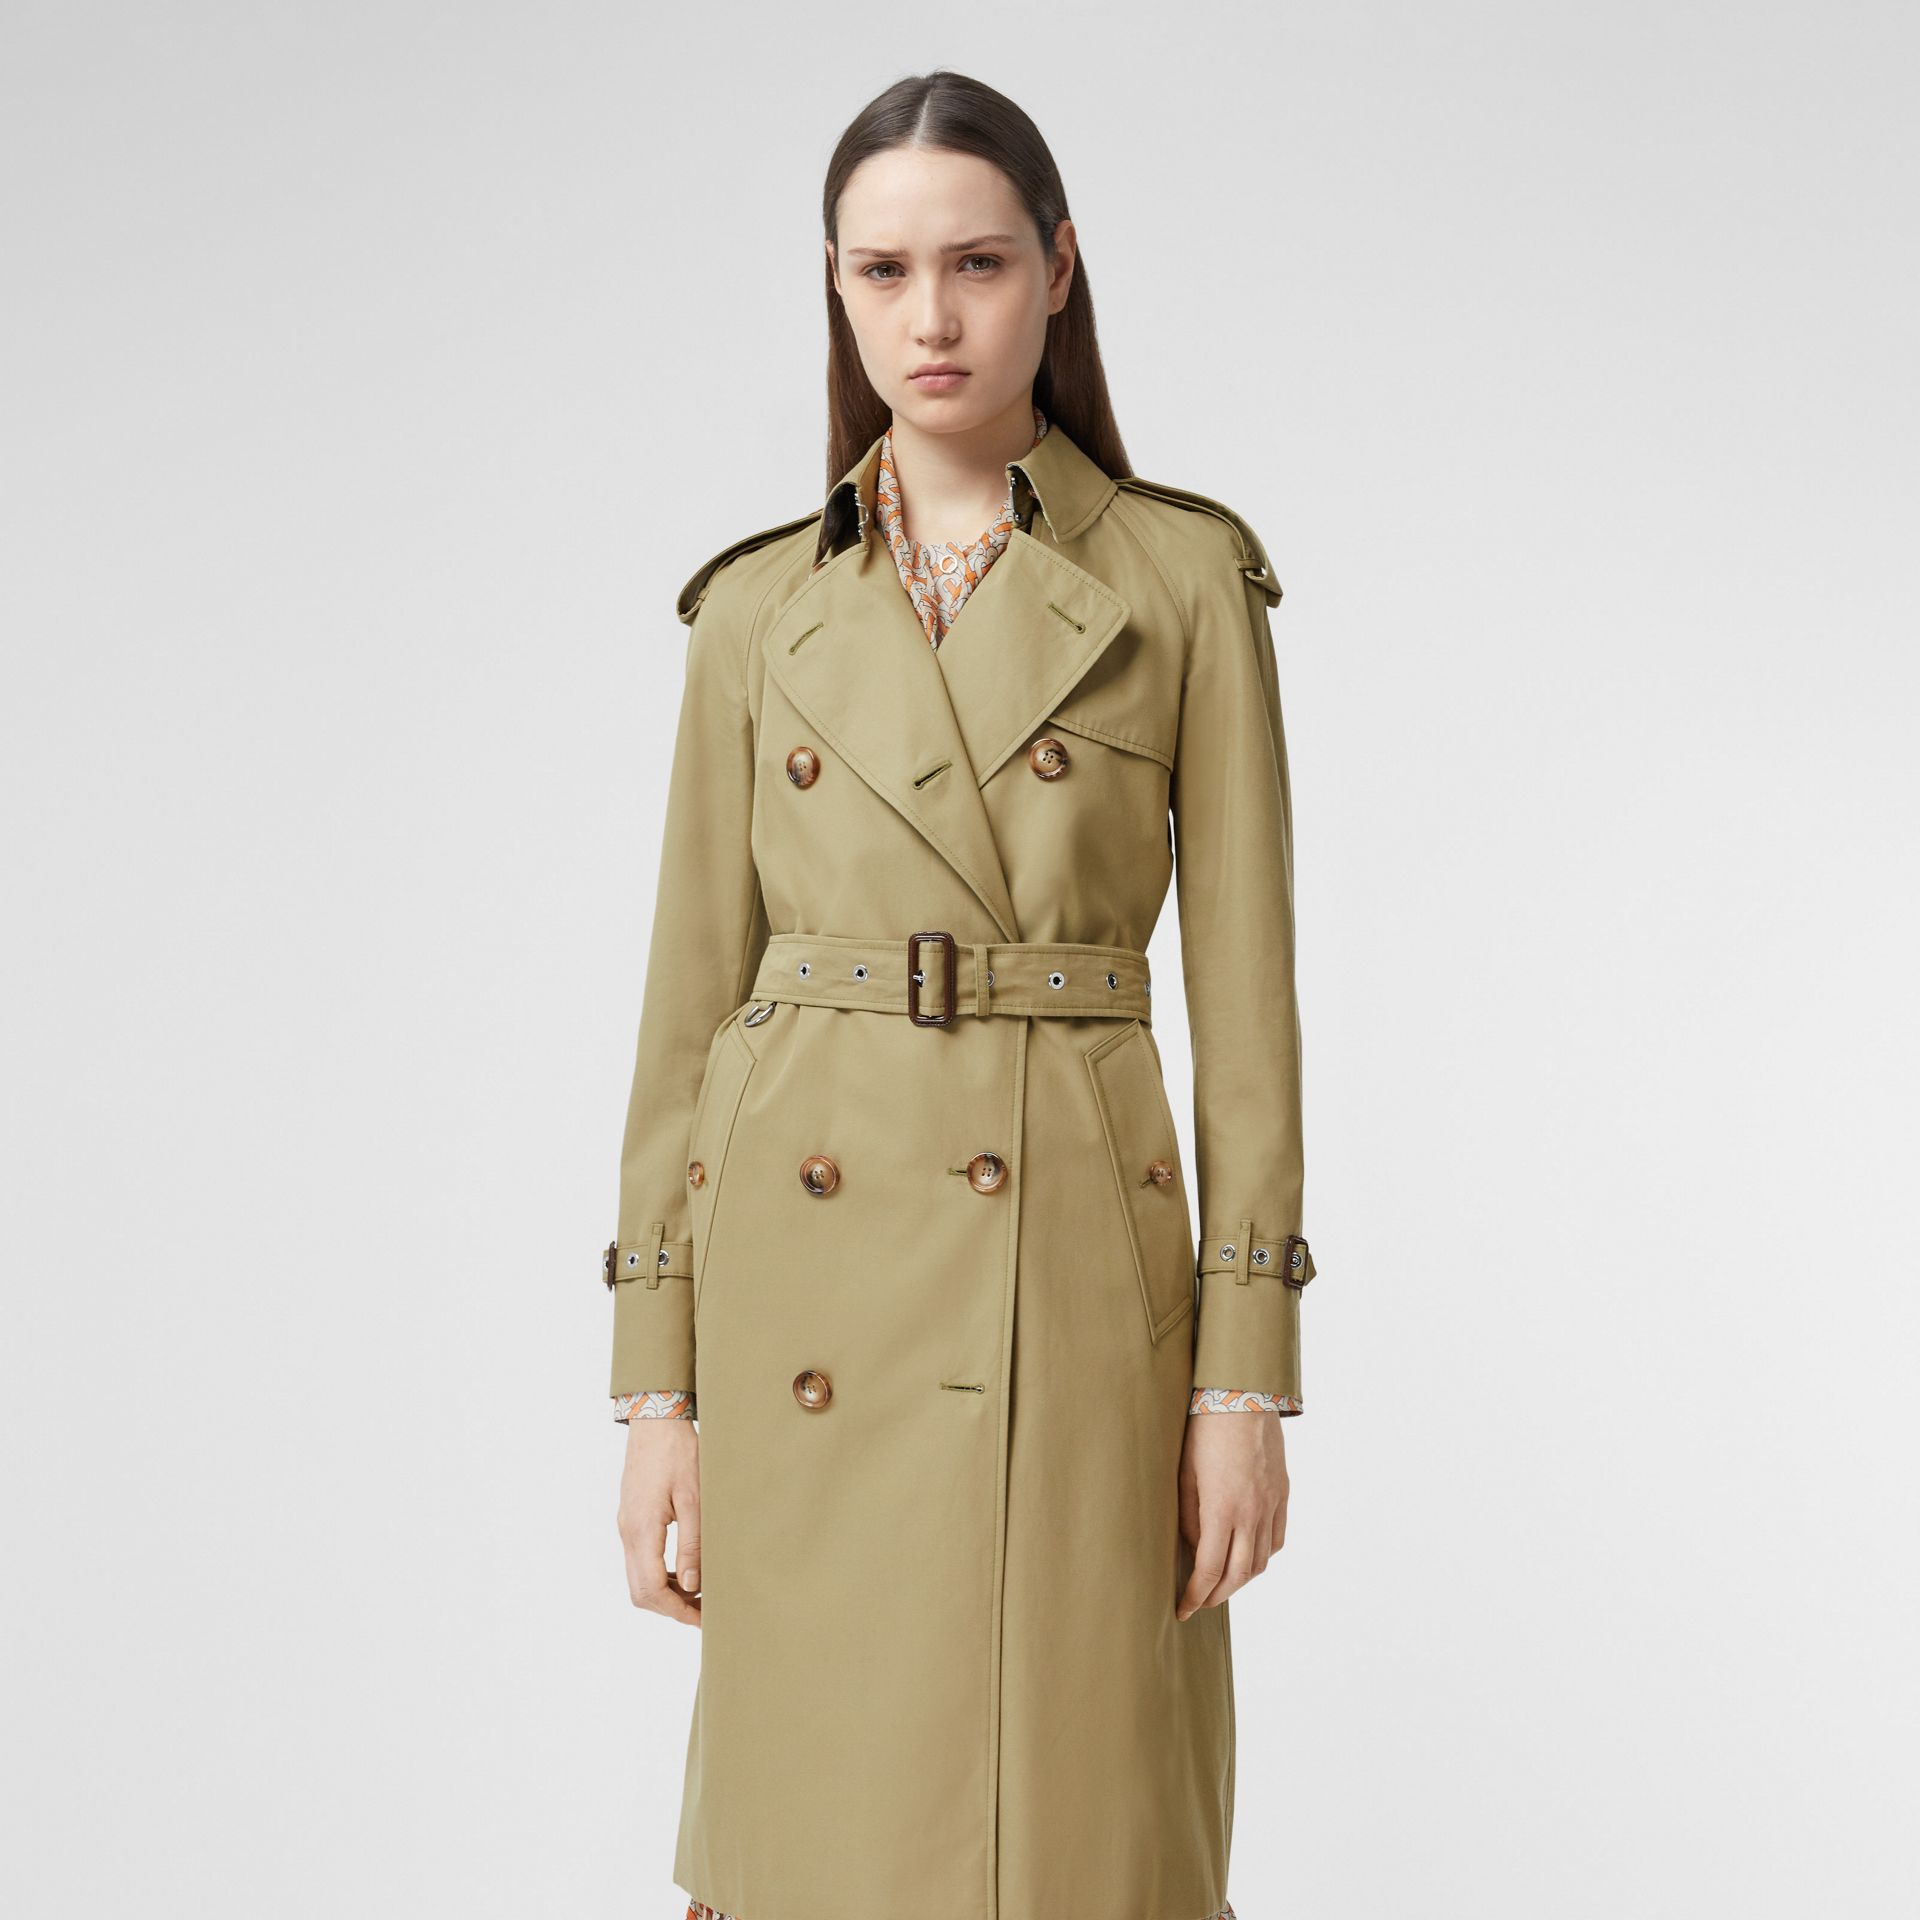 Animalia Print-lined Cotton Gabardine Trench Coat in Rich Olive - Women | Burberry - gallery image 0